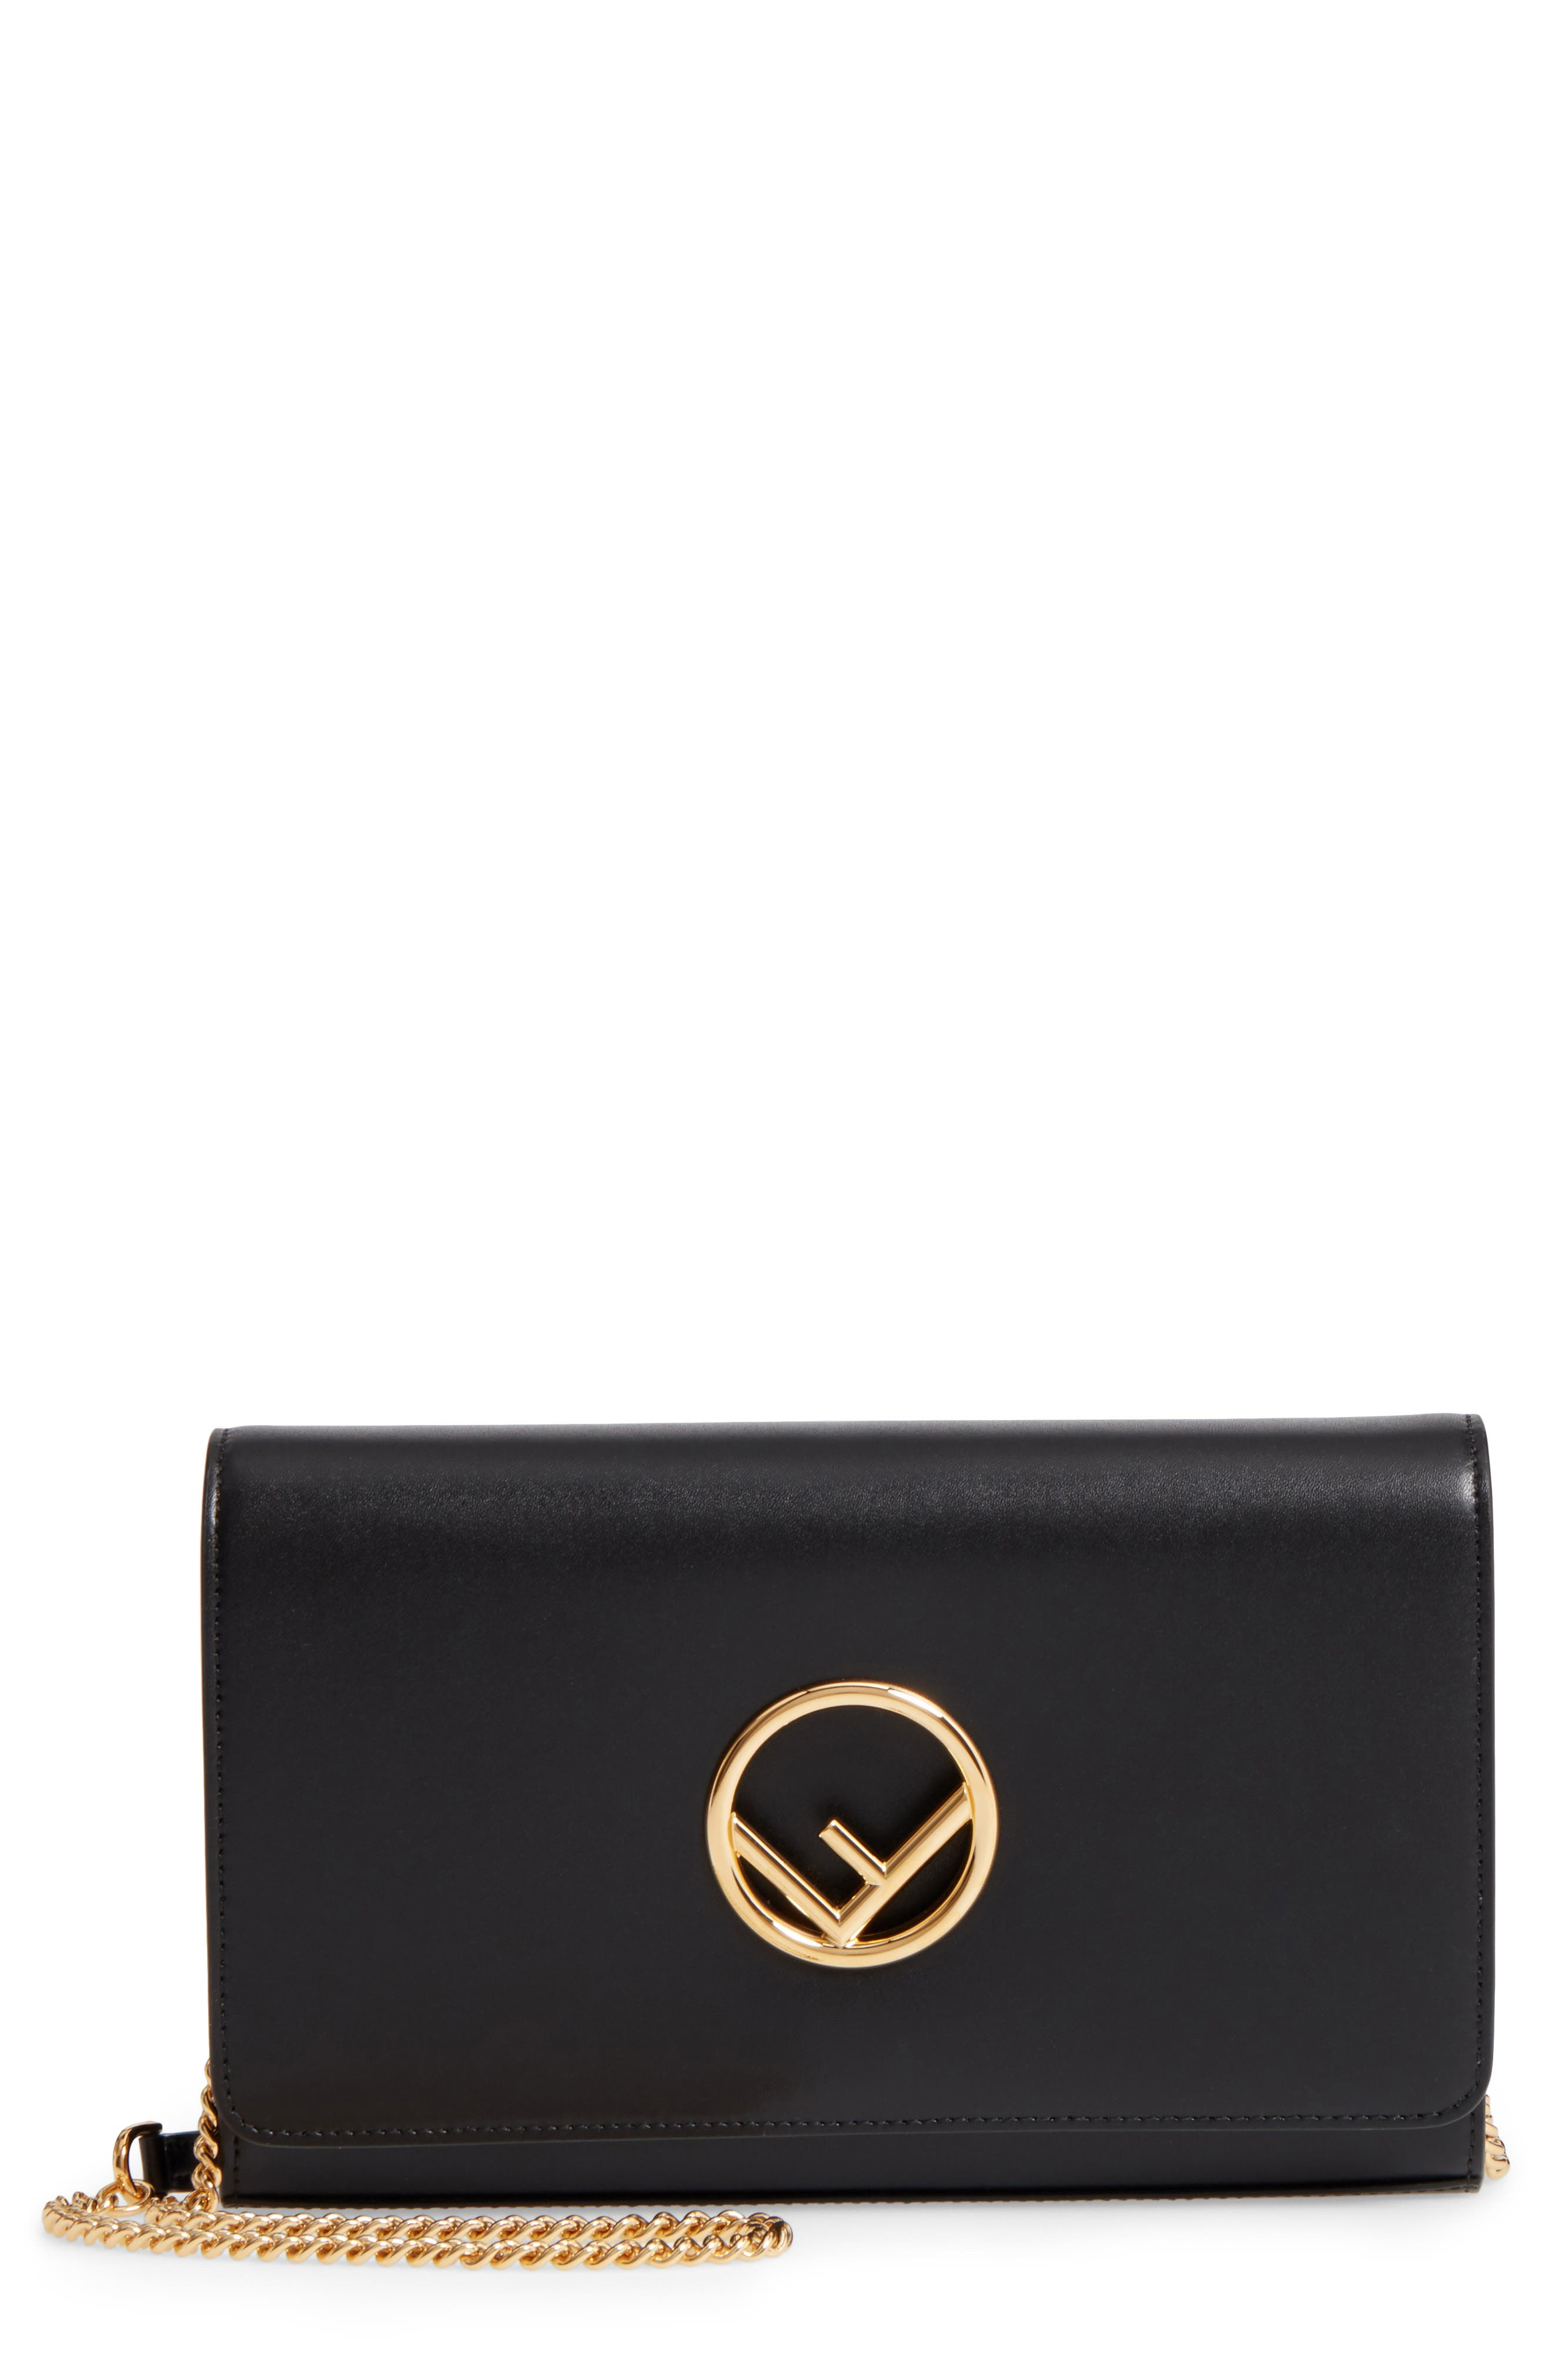 Fendi Liberty Logo Calfskin Leather Wallet on a Chain